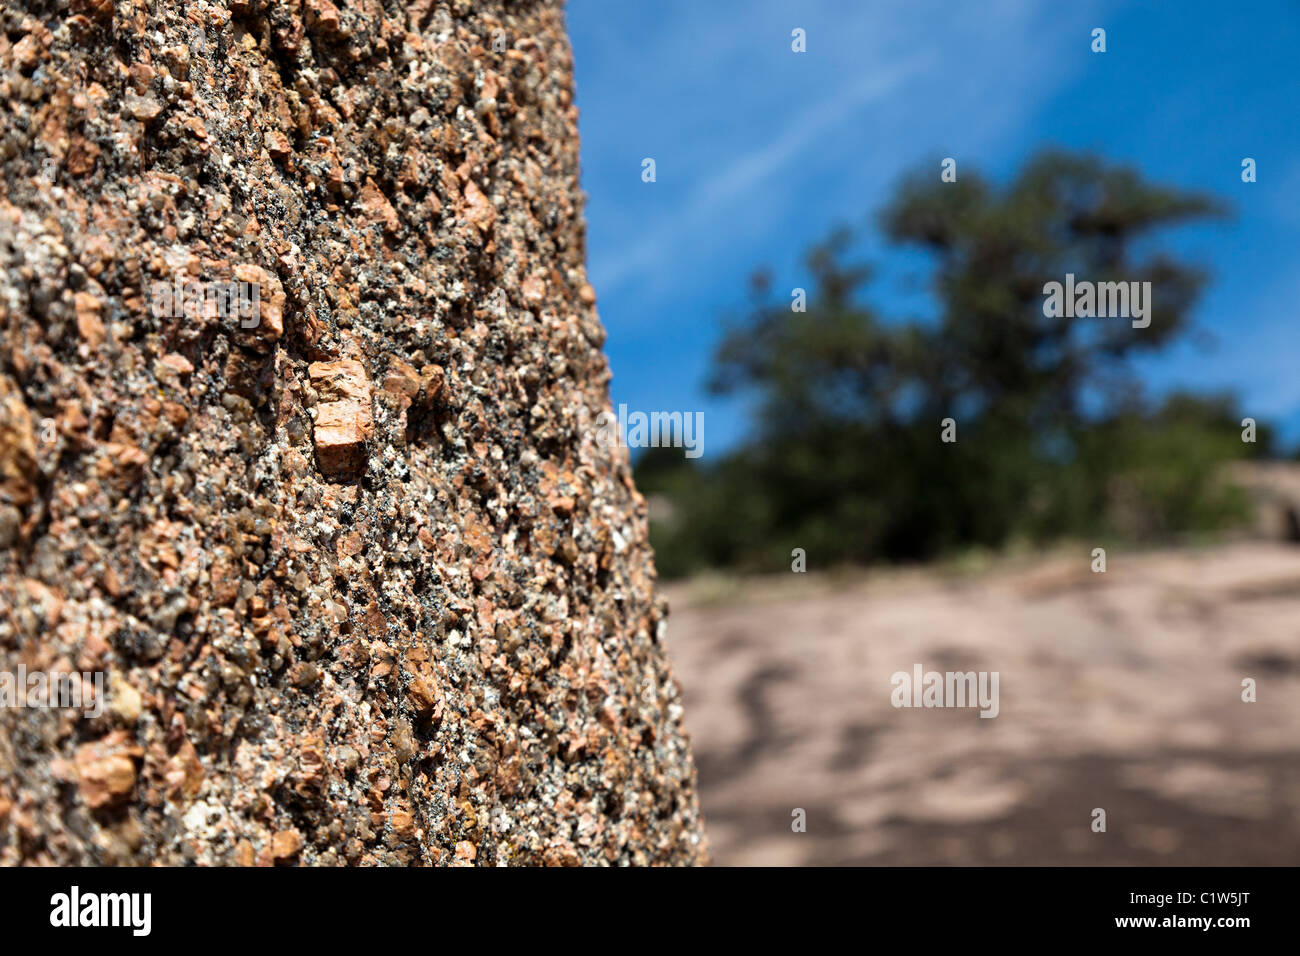 Granit in Enchanted Rock State Natural Area Texas USA Stockbild